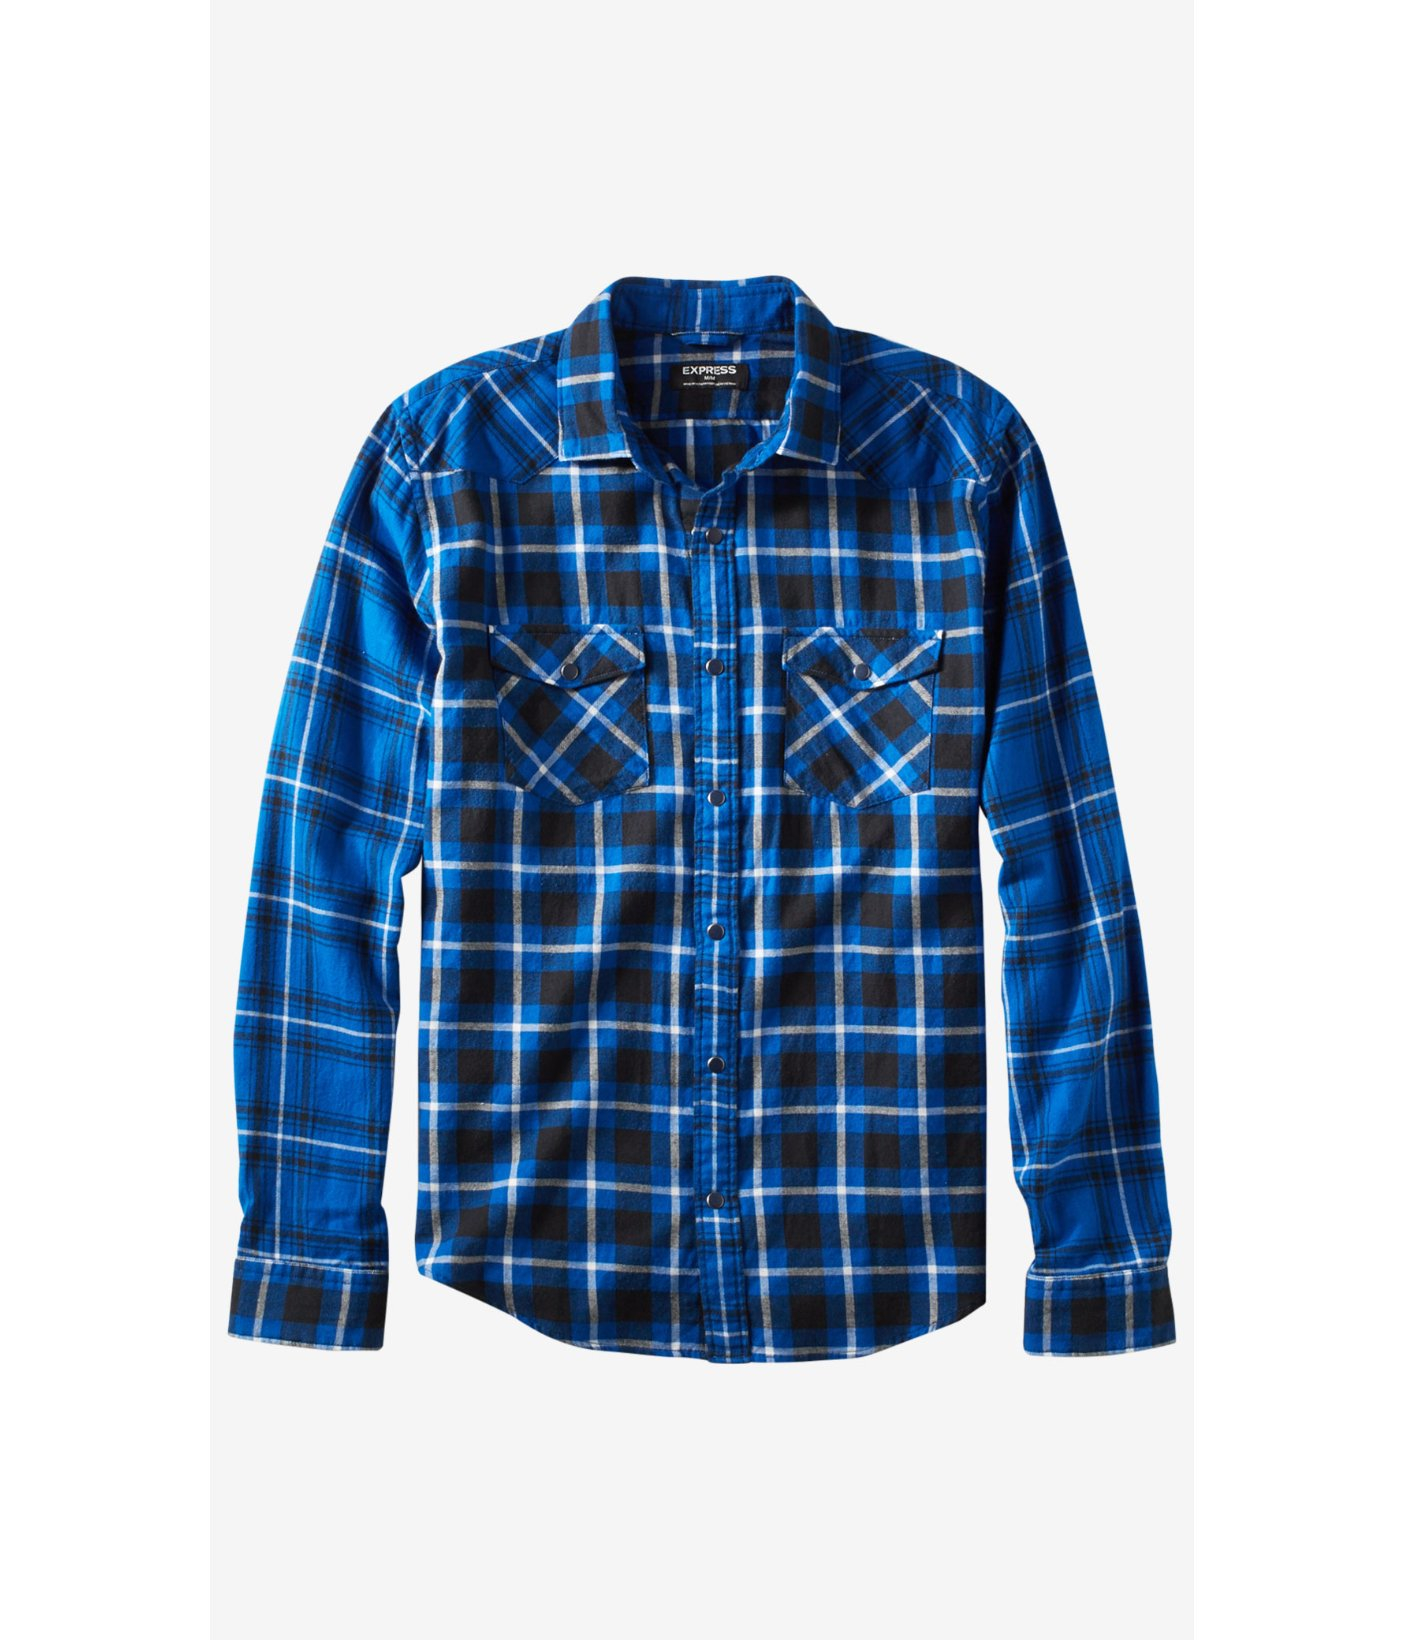 Express Flannel Contrast Plaid Shirt In Blue For Men Lyst